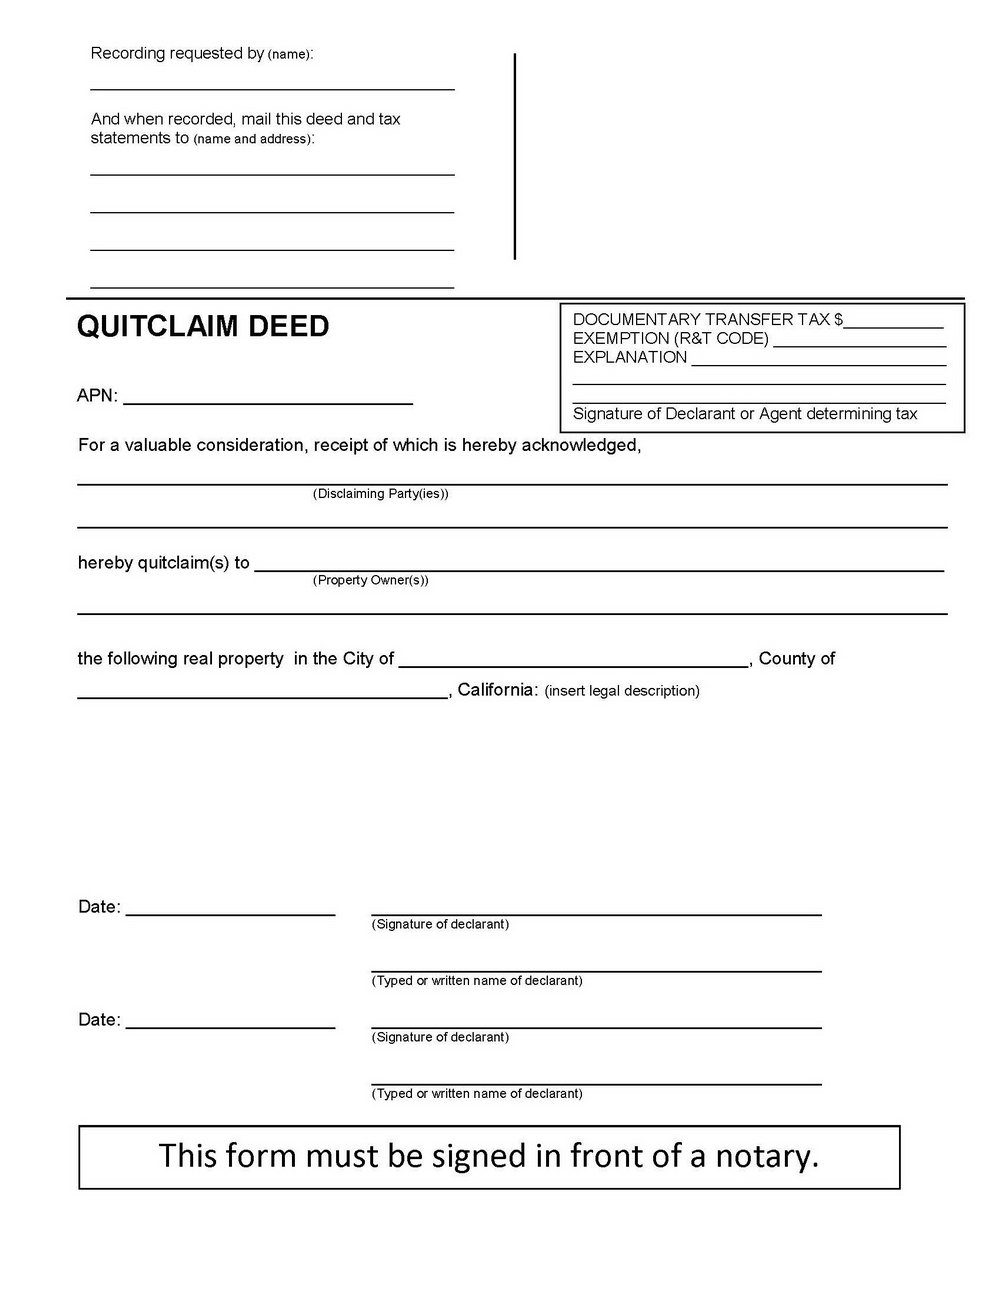 Quit Claim Deed Form Alabama